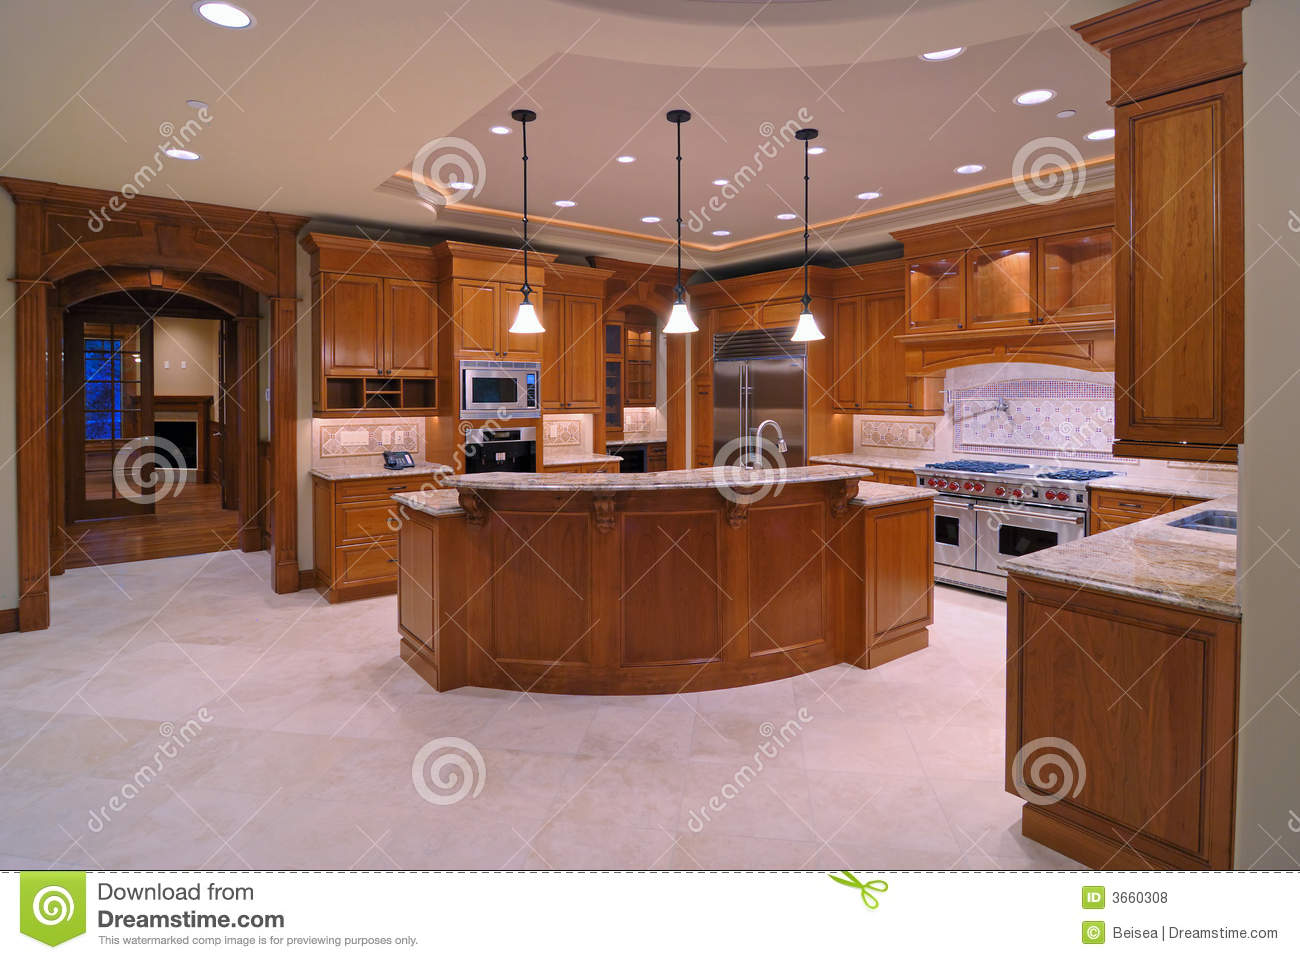 Amerikaanse keukens stock foto afbeelding bestaande uit for Kitchen designs that stand the test of time